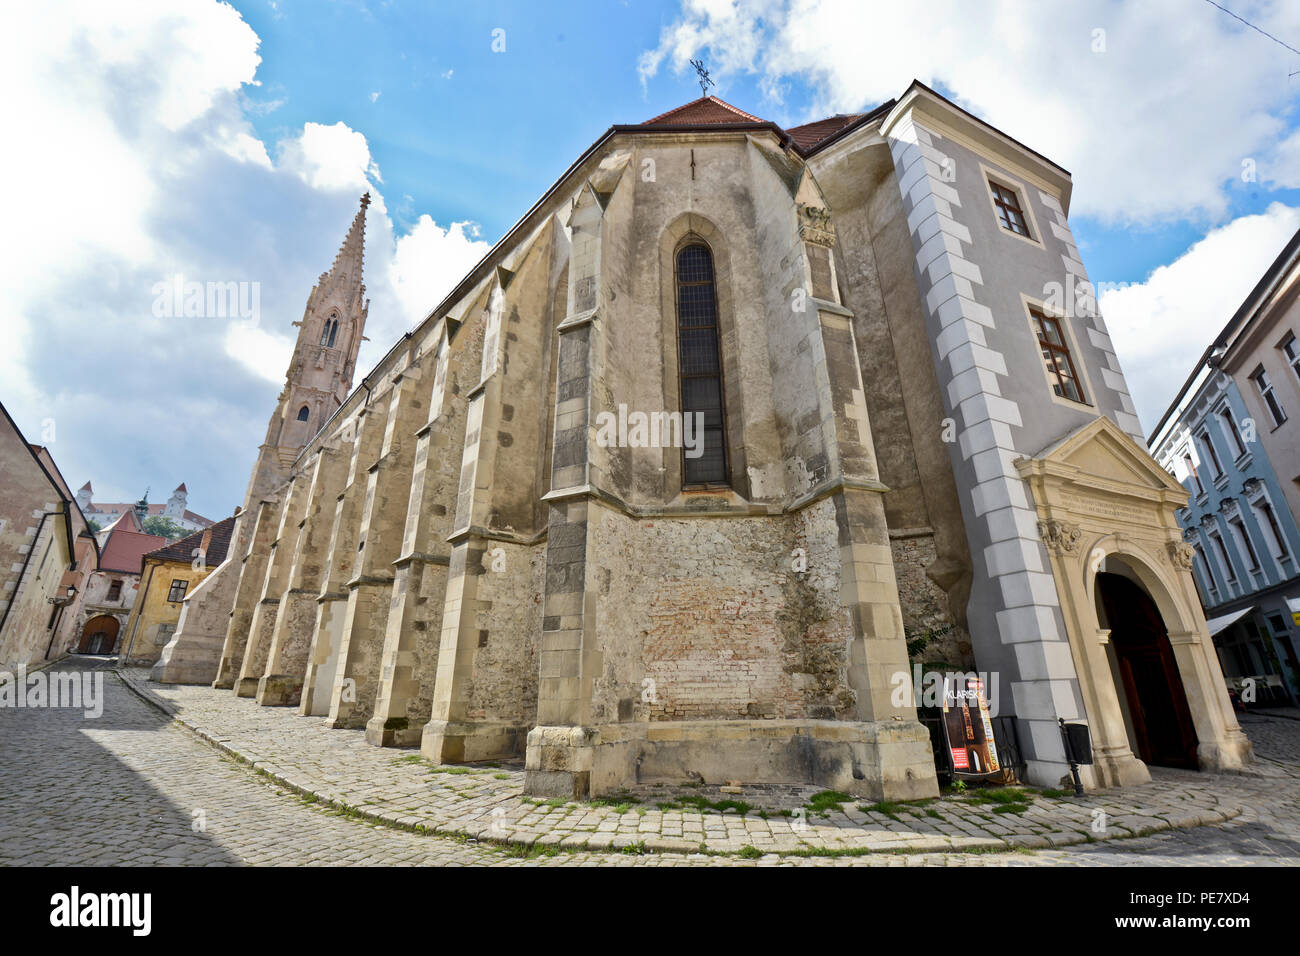 Cathedral of the Exaltation of the Holy Cross, Bratislava, Slovakia - Stock Image